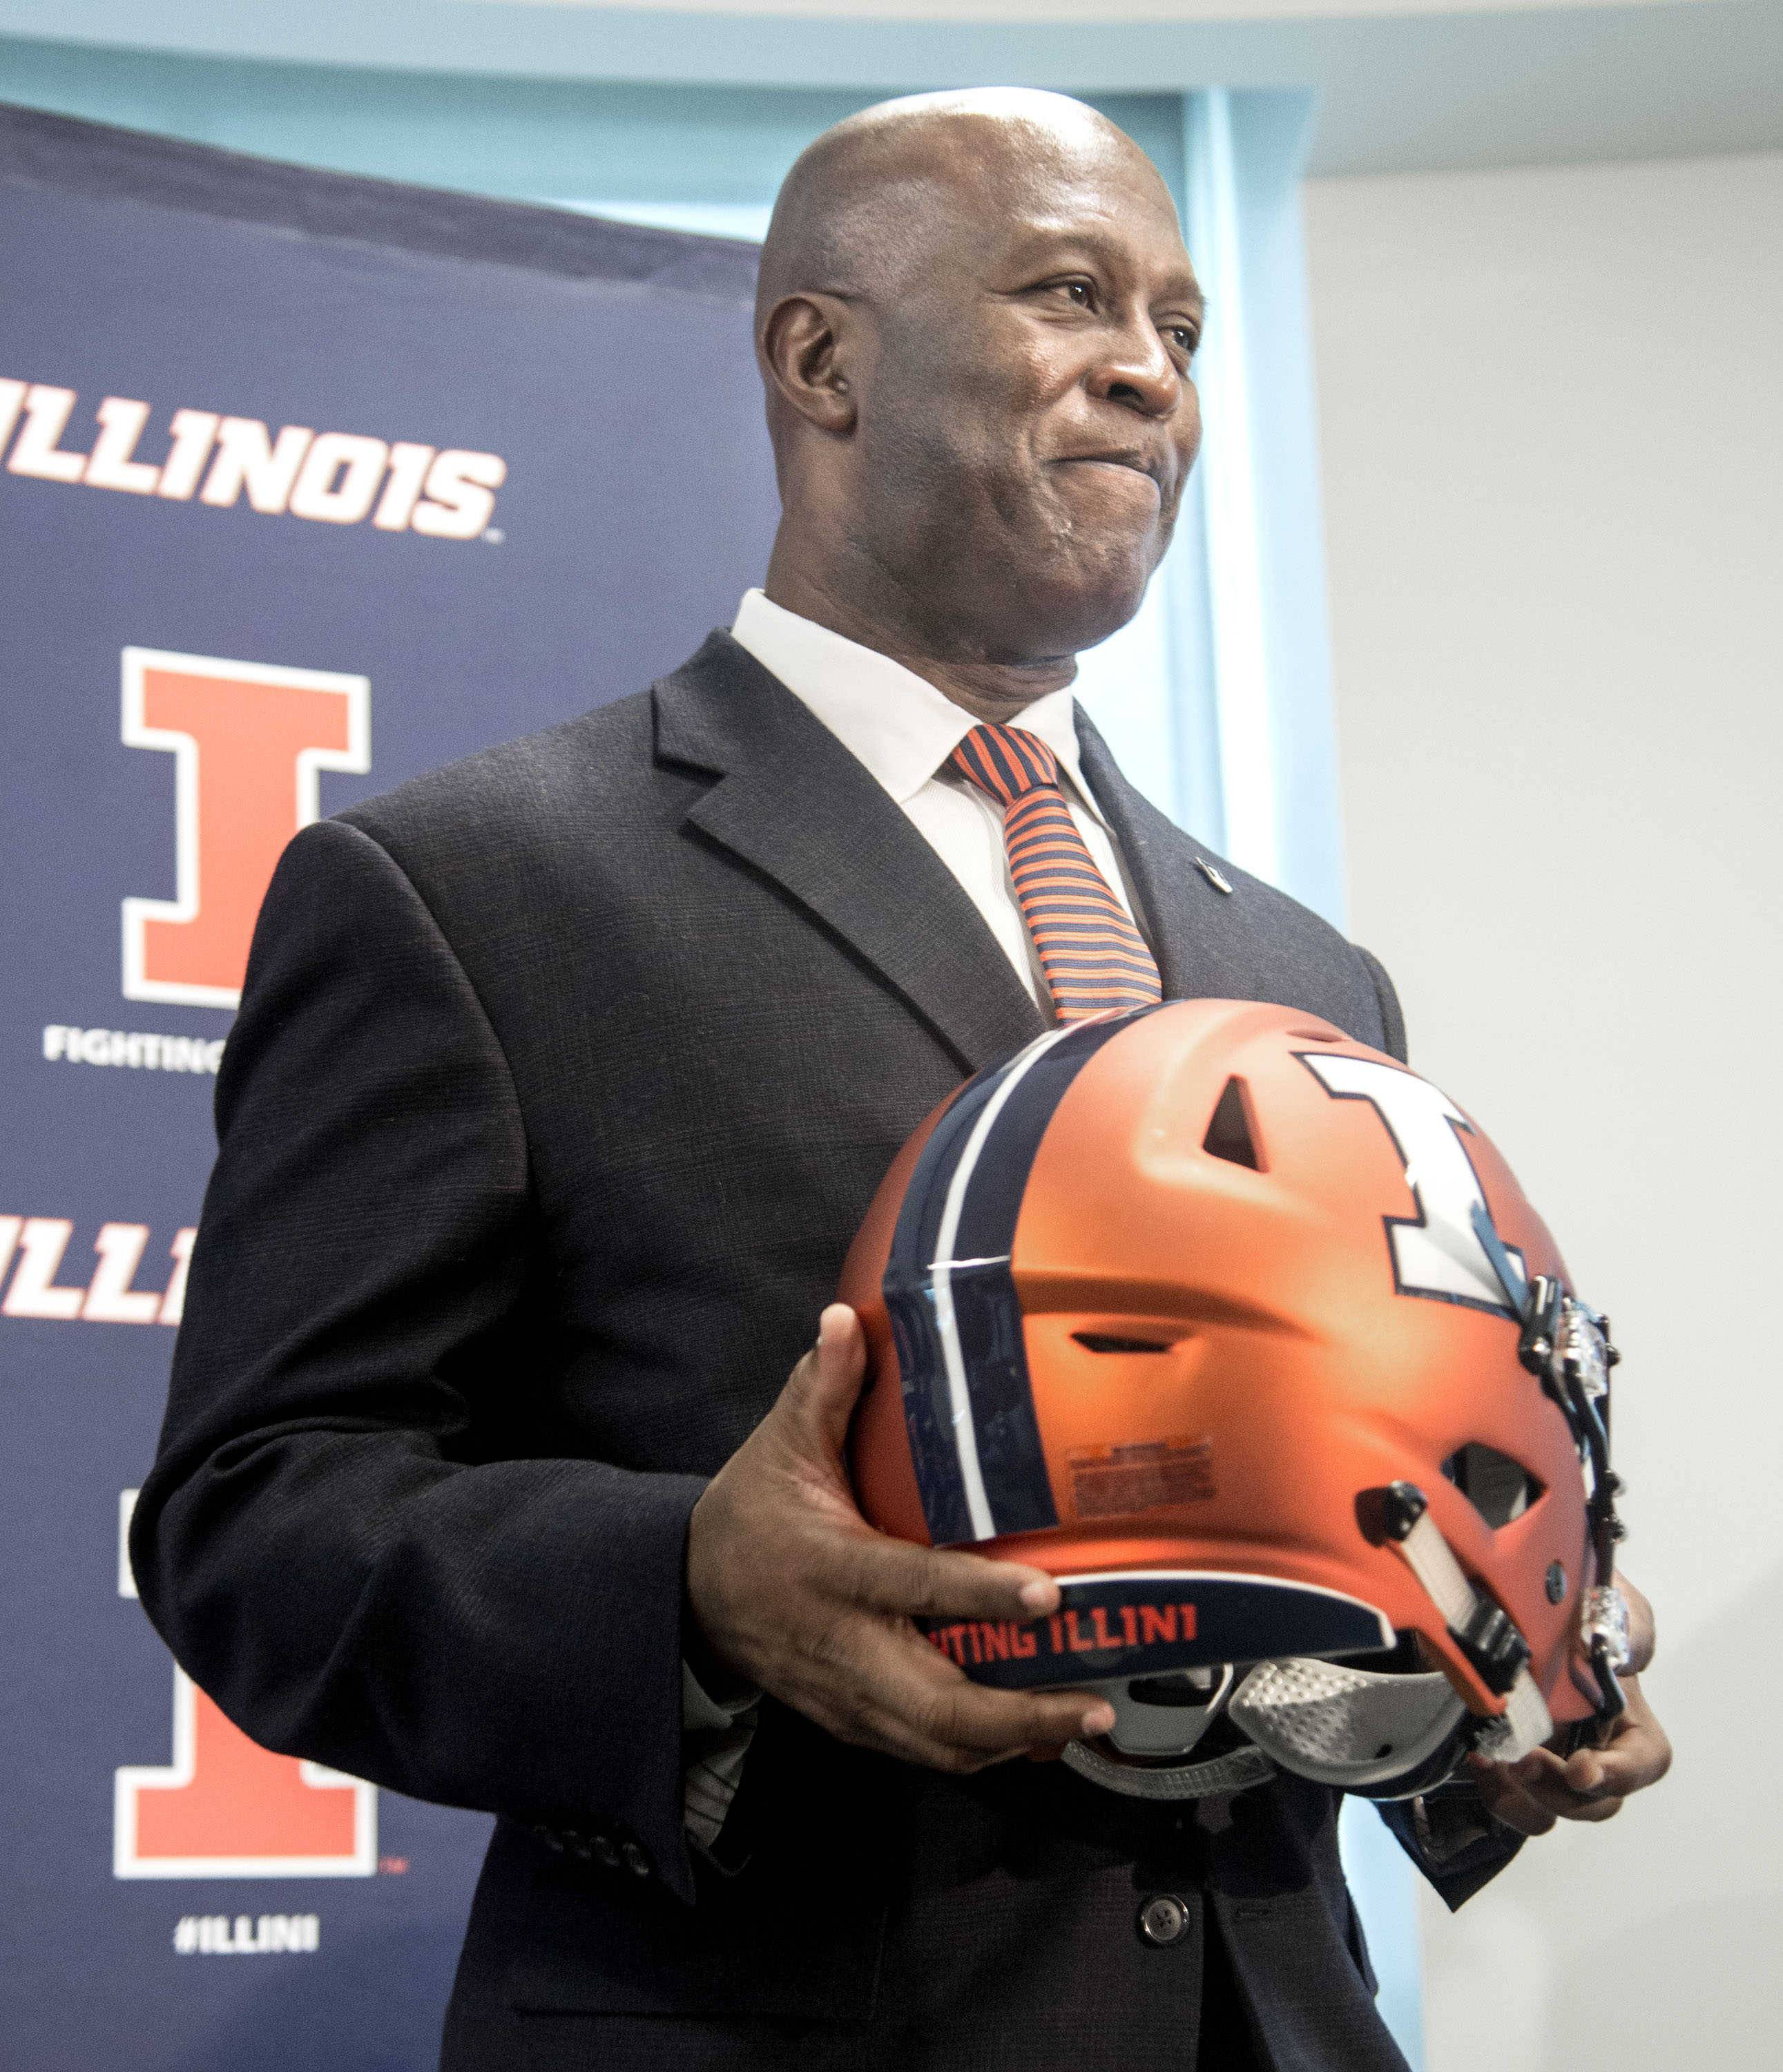 Lovie Smith, the 25th head football coach at the University of Illinois, insists coaching is coaching, whether it's in the NFL or college.